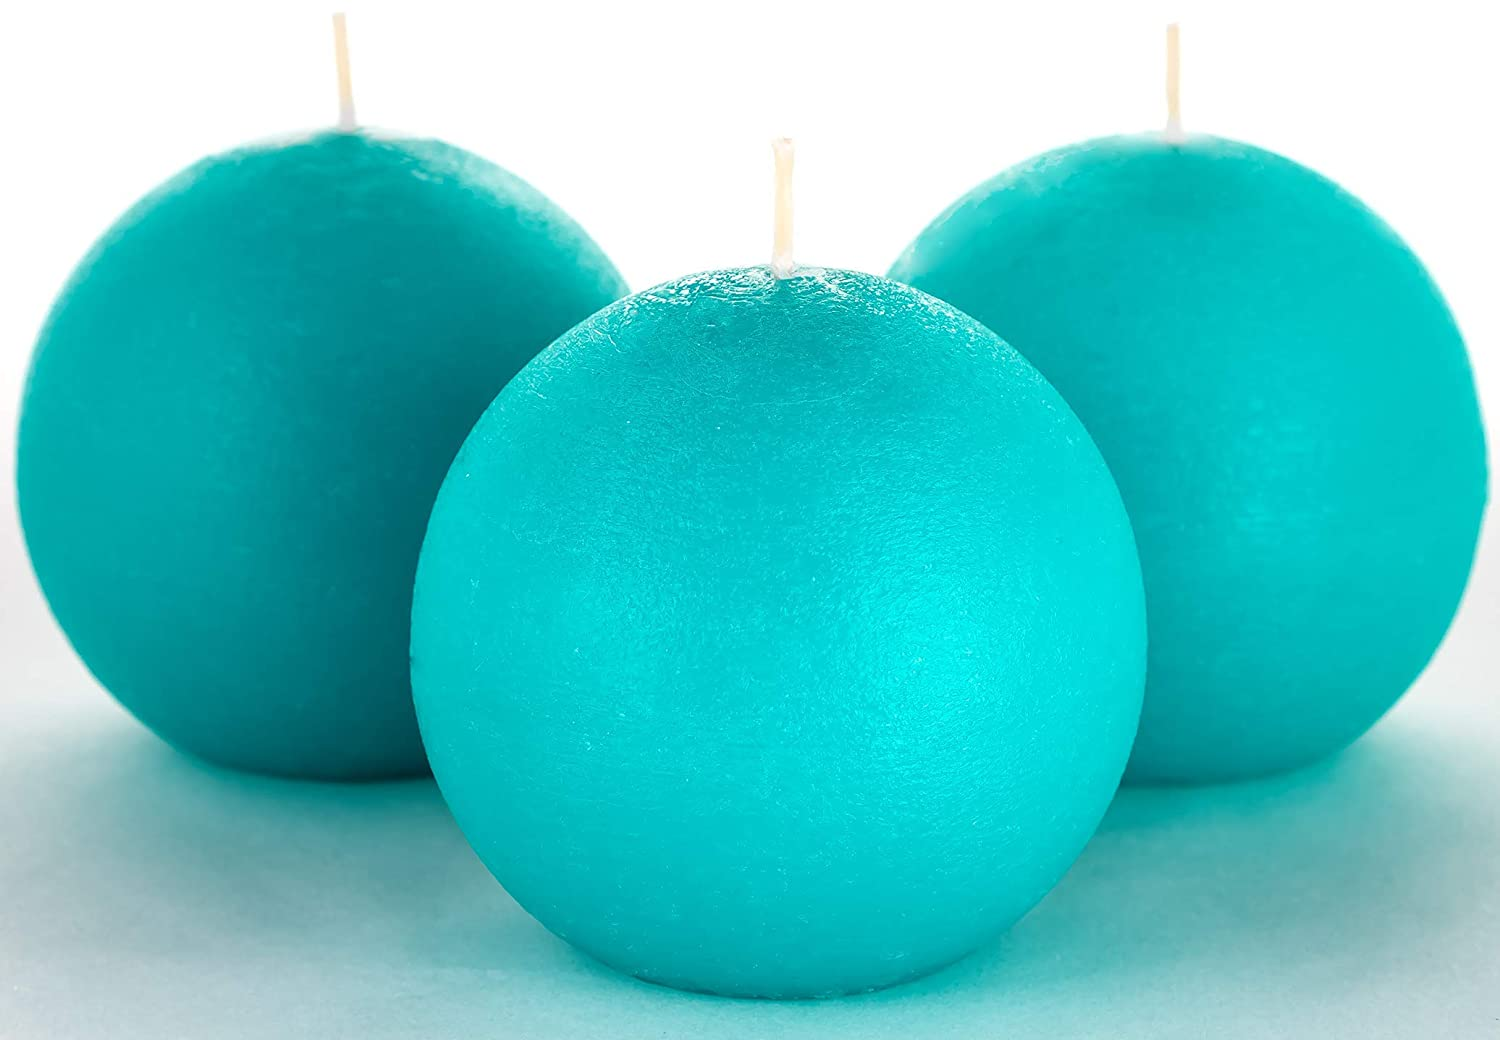 "Set of 3 Turquoise/Teal Sphere Ball Candles 3"" Unscented Handpoured for Weddings, Home Decoration, Church, Restaurant, Spa, Smokeless Cotton Wick"